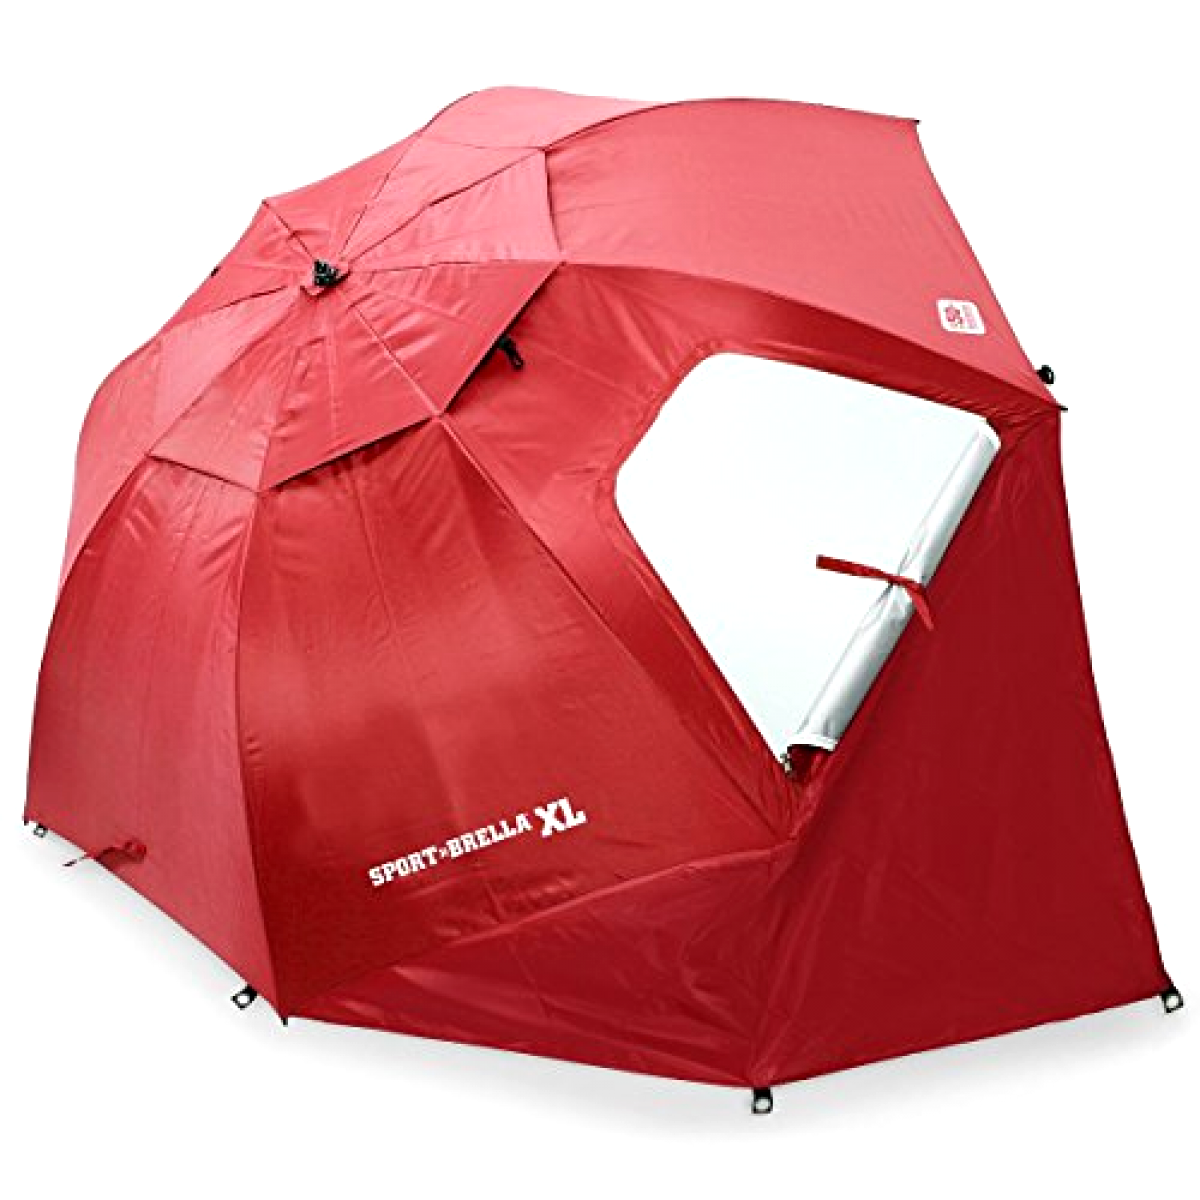 nuovo Xgree Beach Umbrella Summer Shade Maximum Sun Prossoection Shelter, Deep rosso